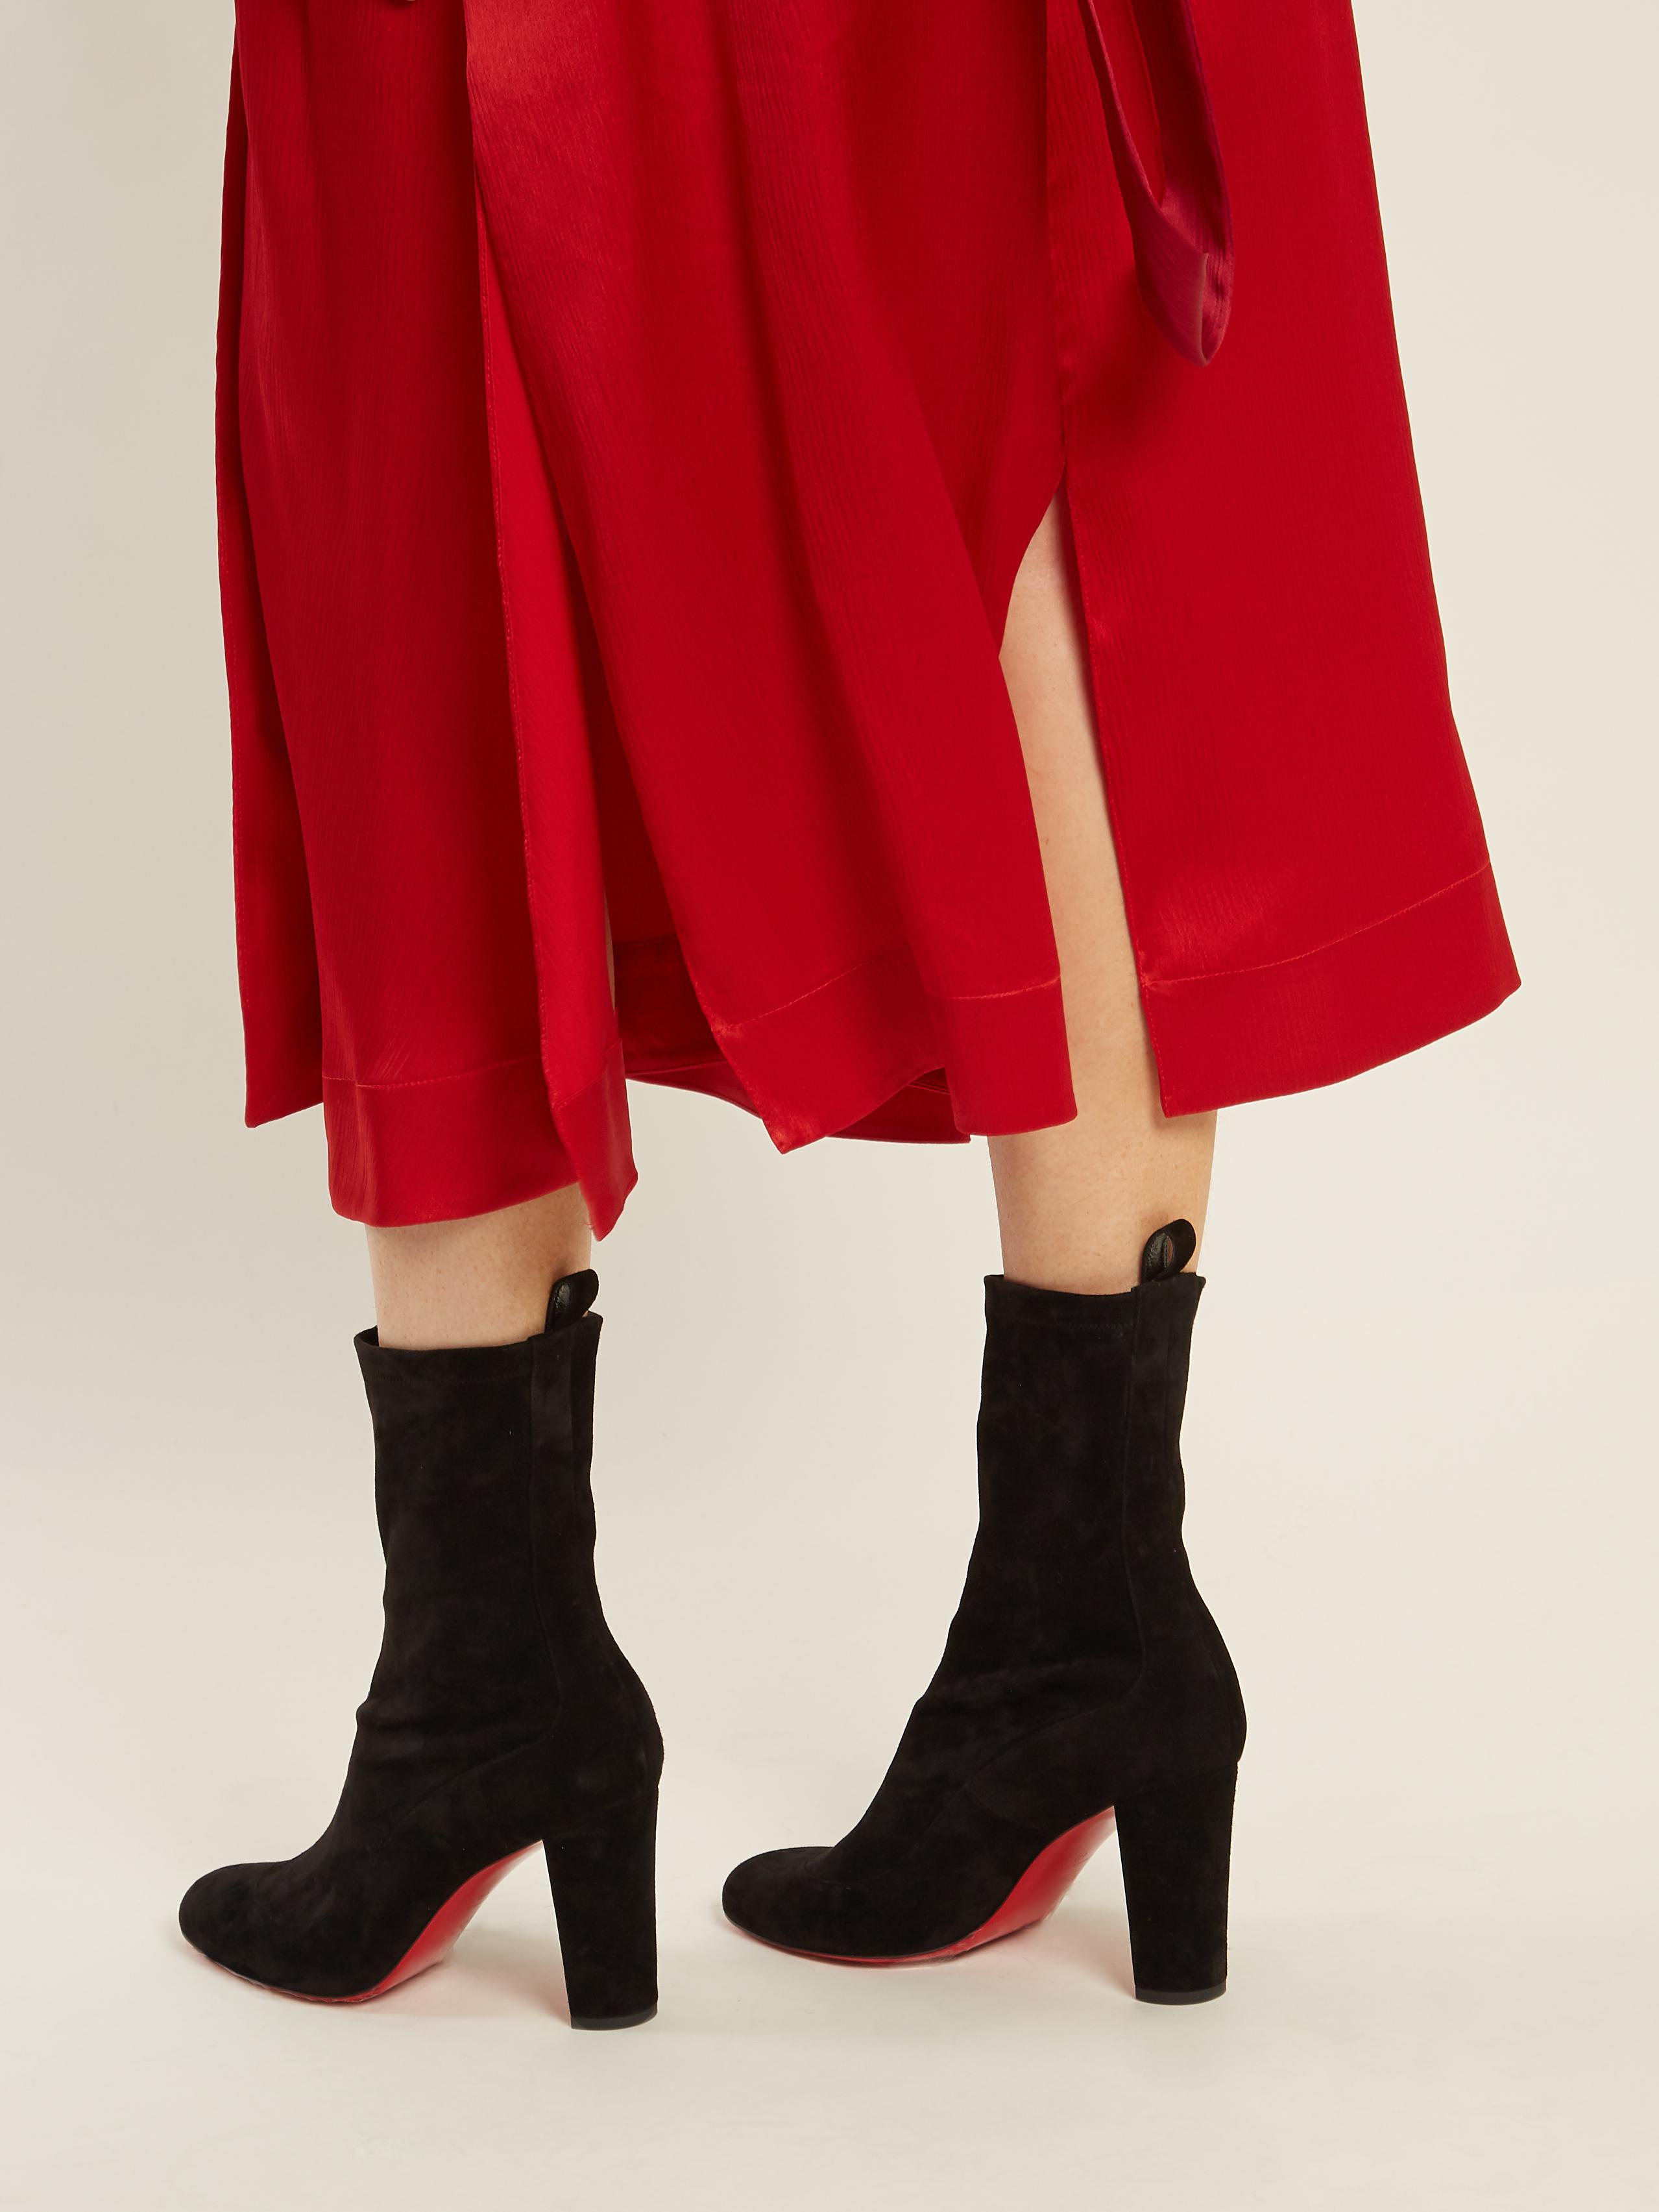 98c556fd205 Lyst - Christian Louboutin Gena Suede Ankle Boots in Black